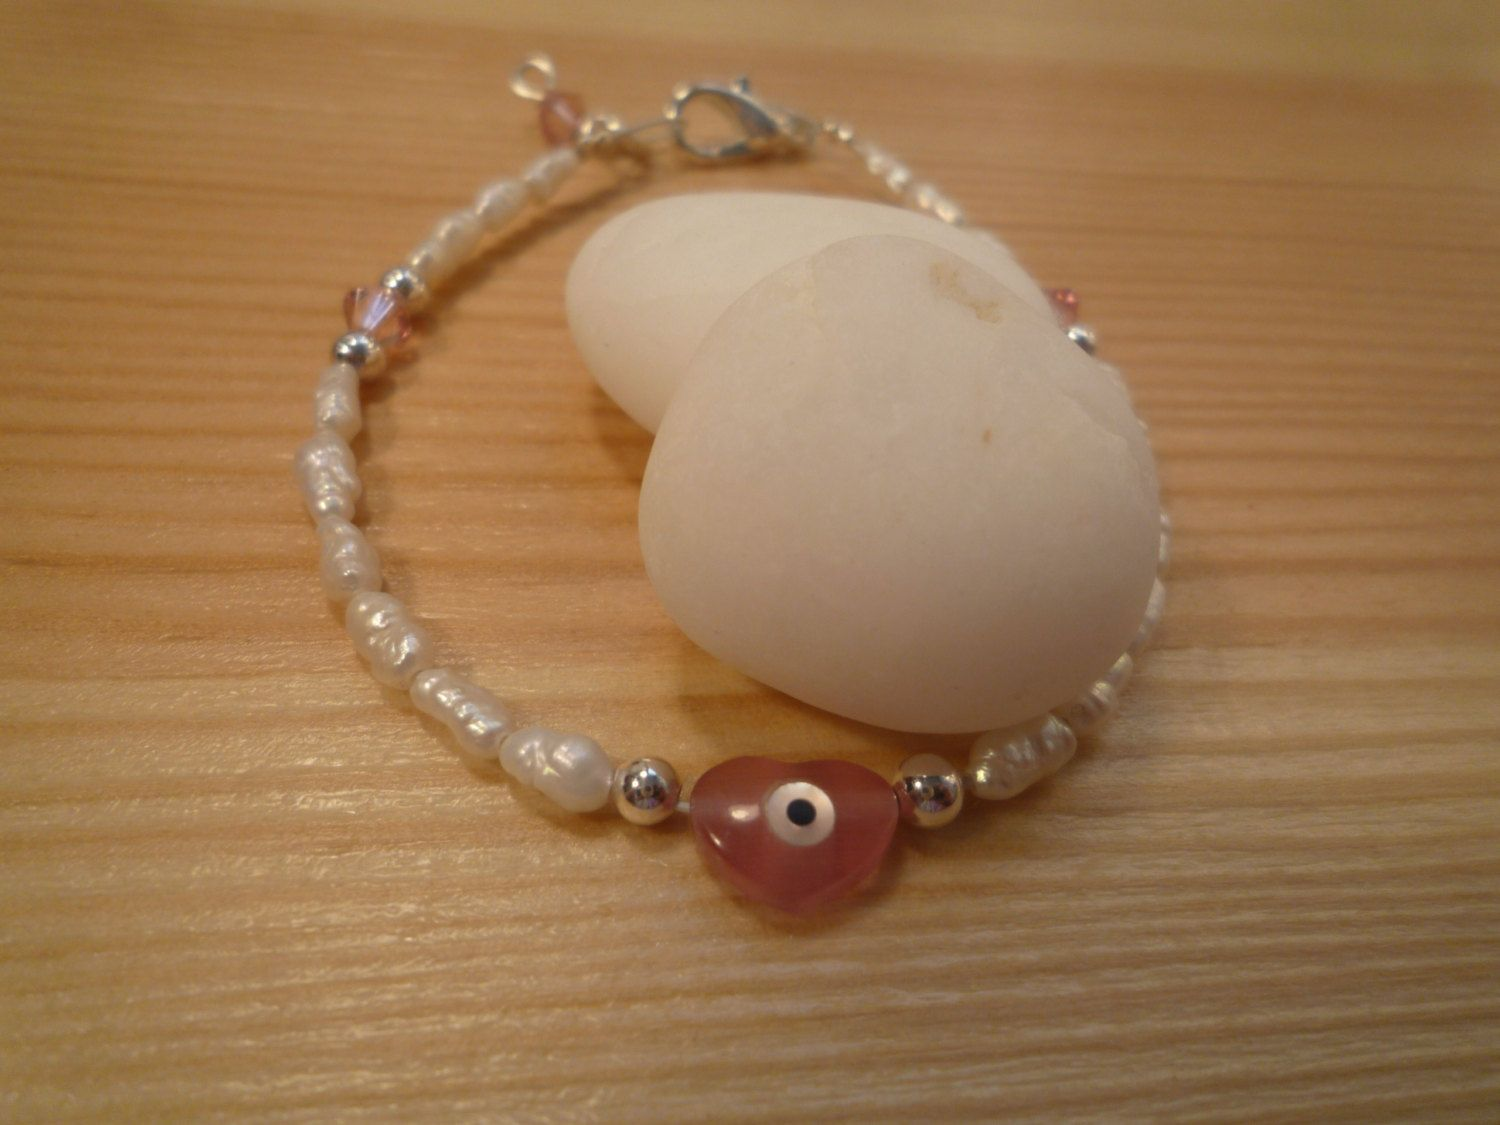 Handmade Kids' Ivory Freshwater Pearls Bracelet with Swarovski Crystal Elements and Mother of Pearls Evil Eye Protection Heart by urbaneprincess on Etsy